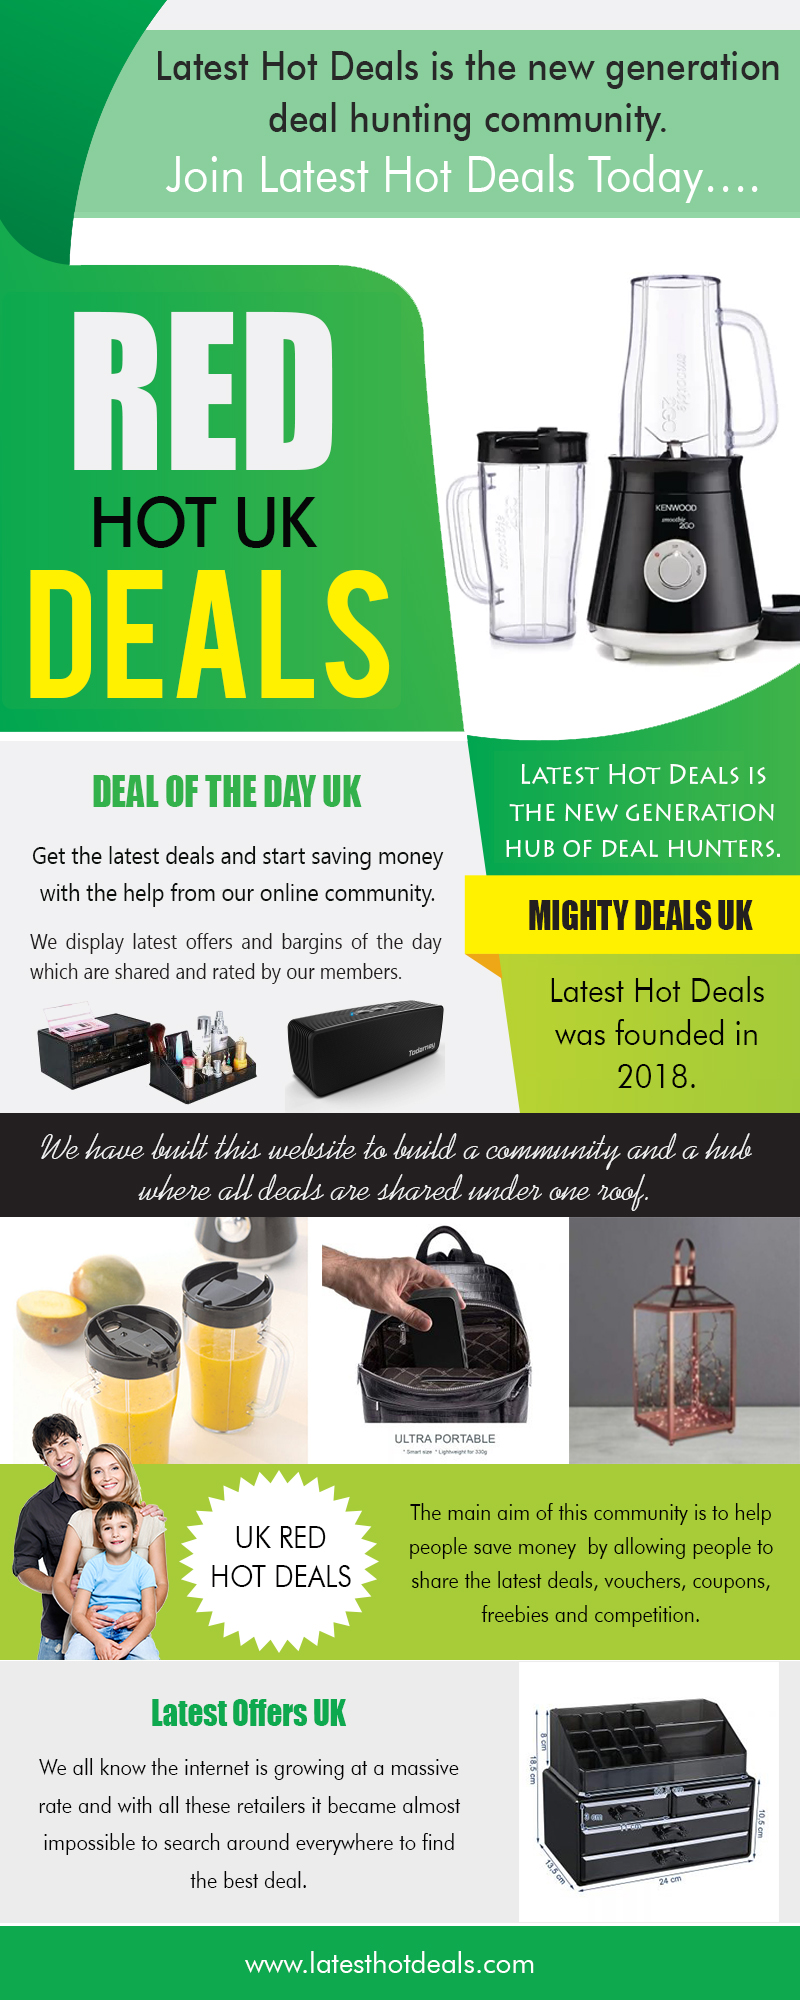 Red Hot UK Deals